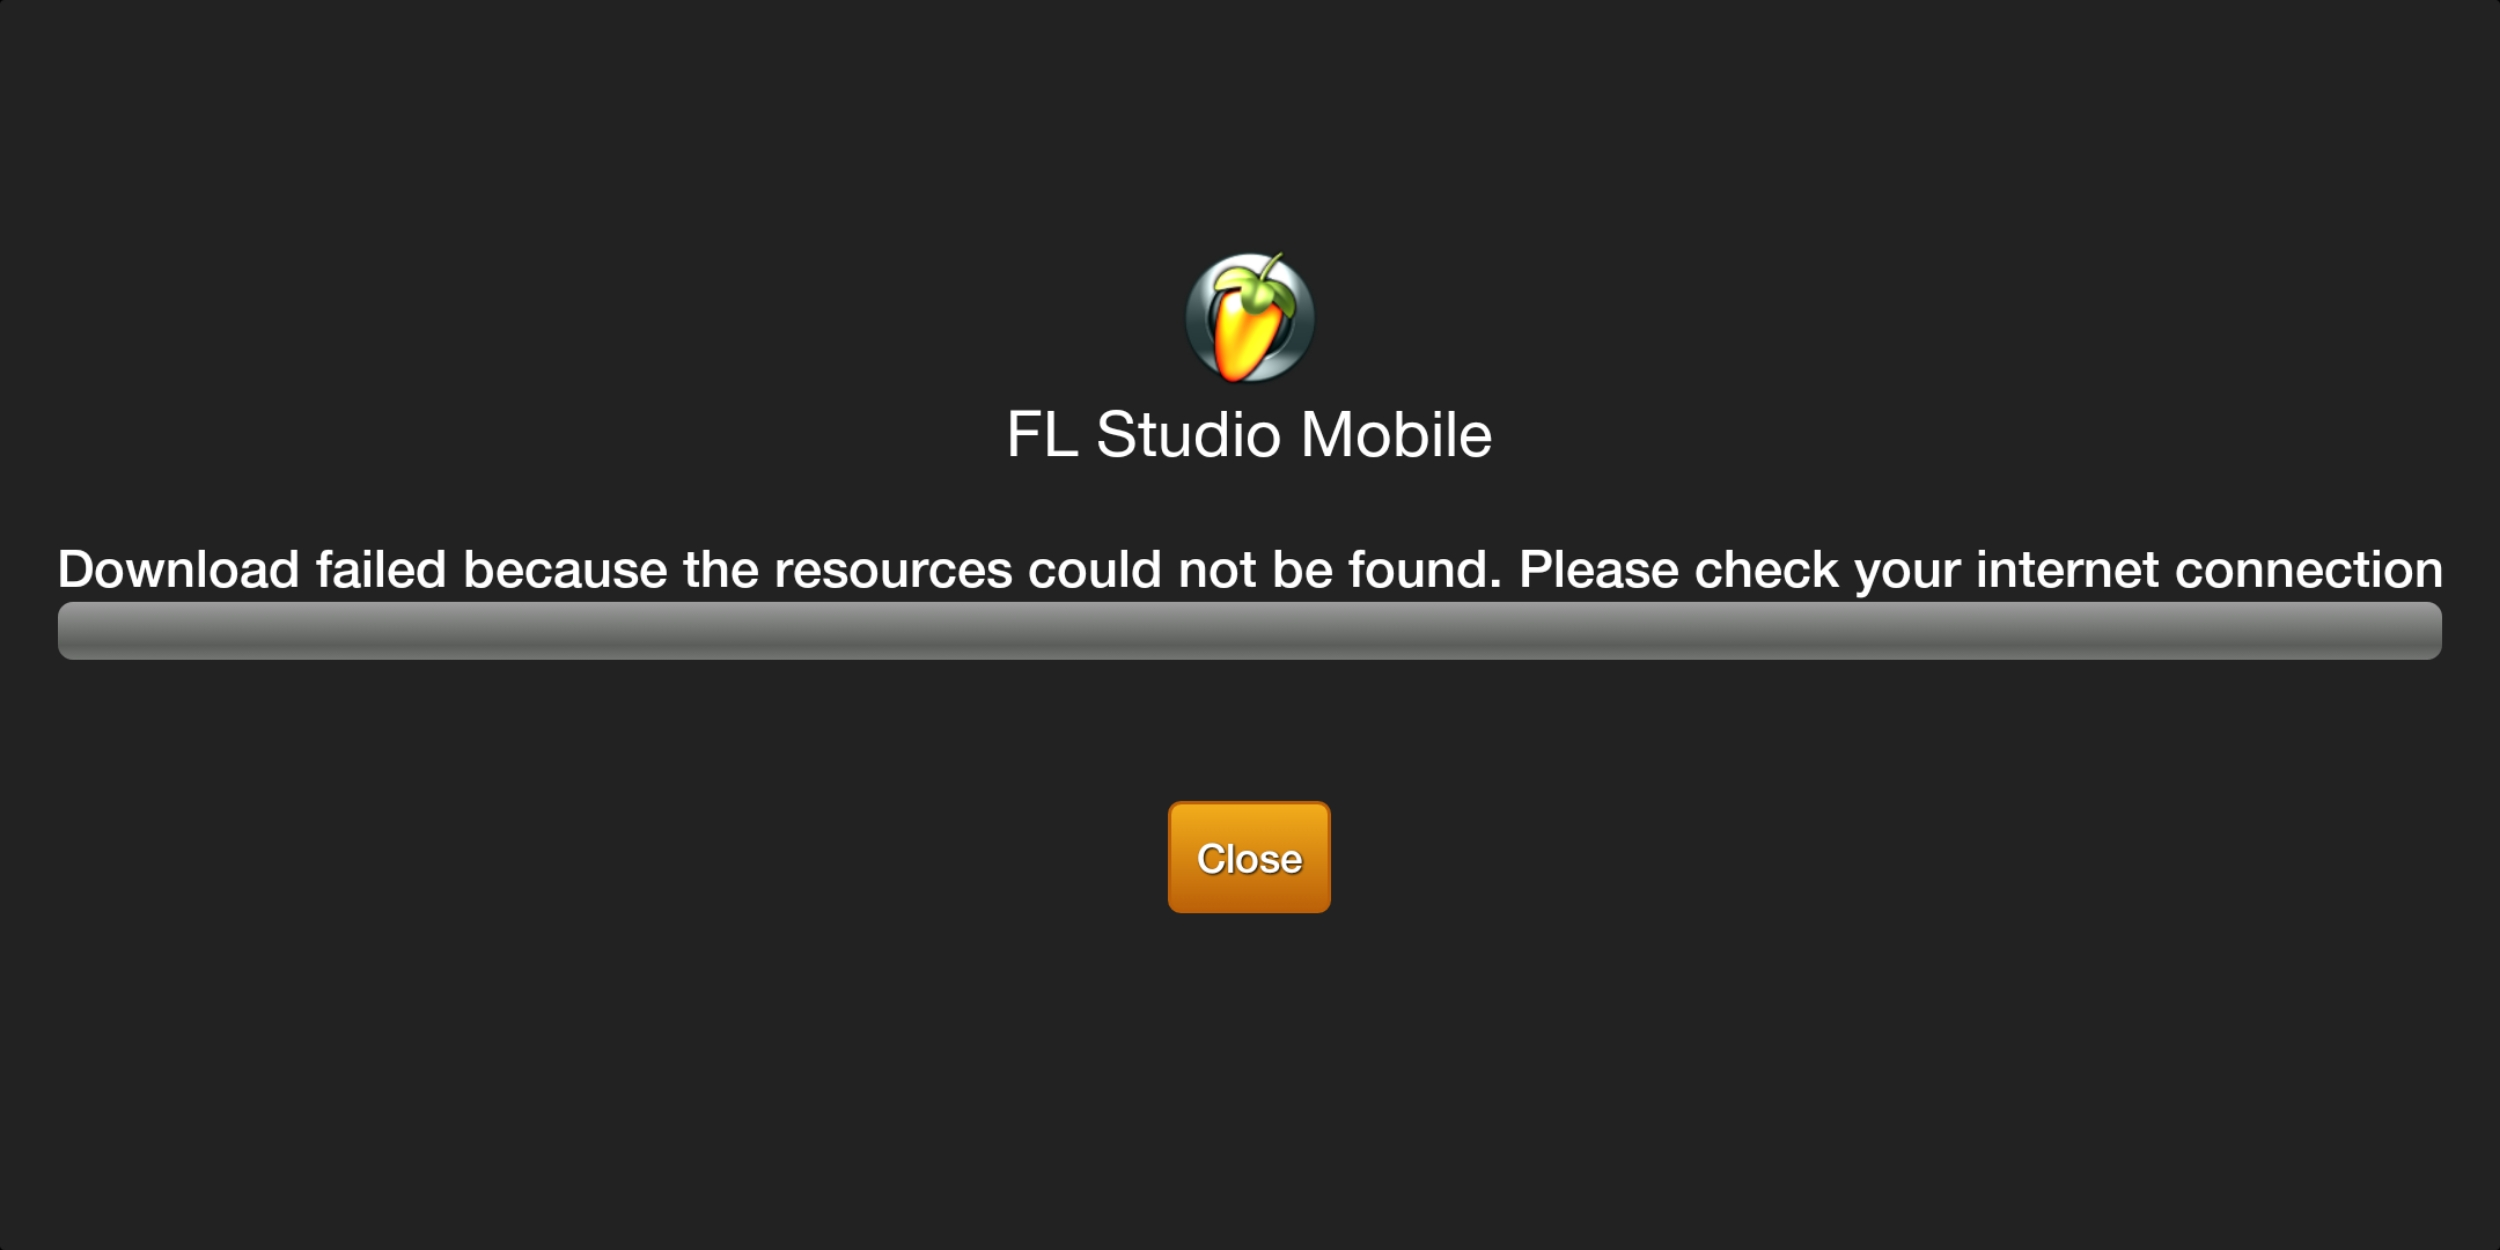 Screenshot_2018-10-30-12-53-51-869_FL Studio Mobile.png